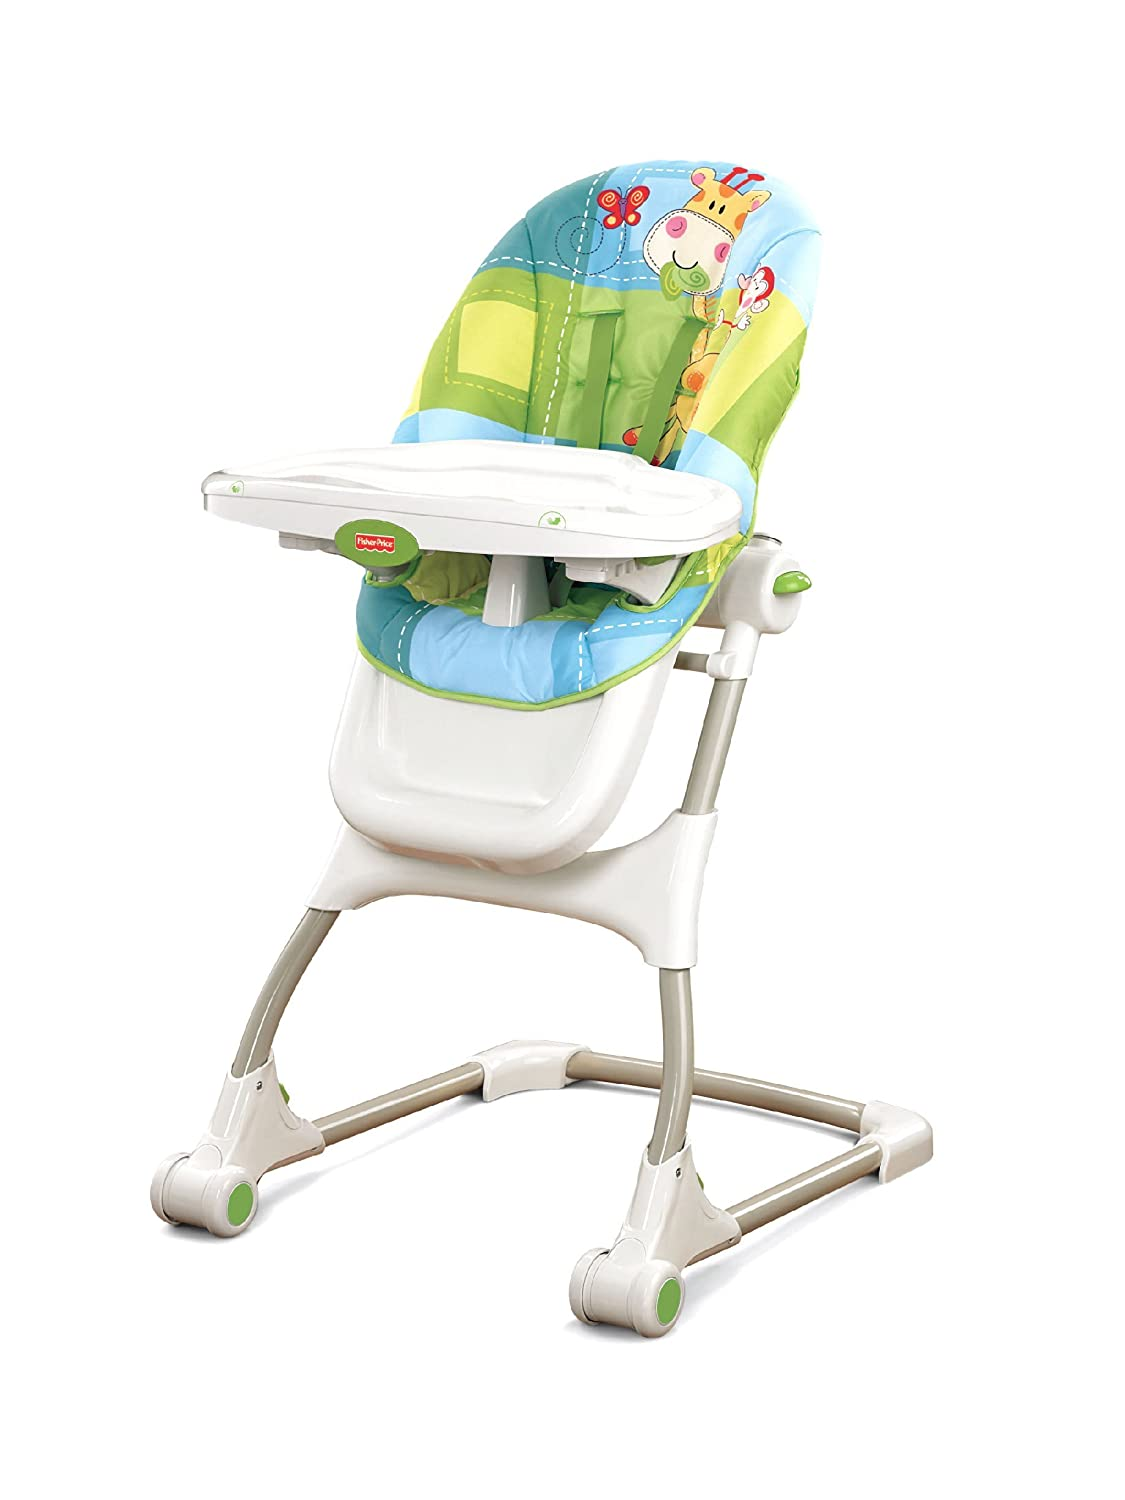 Chair fisher price high chair ez clean - Amazon Com Fisher Price Discover N Grow Ez Clean High Chair Discontinued By Manufacturer Baby